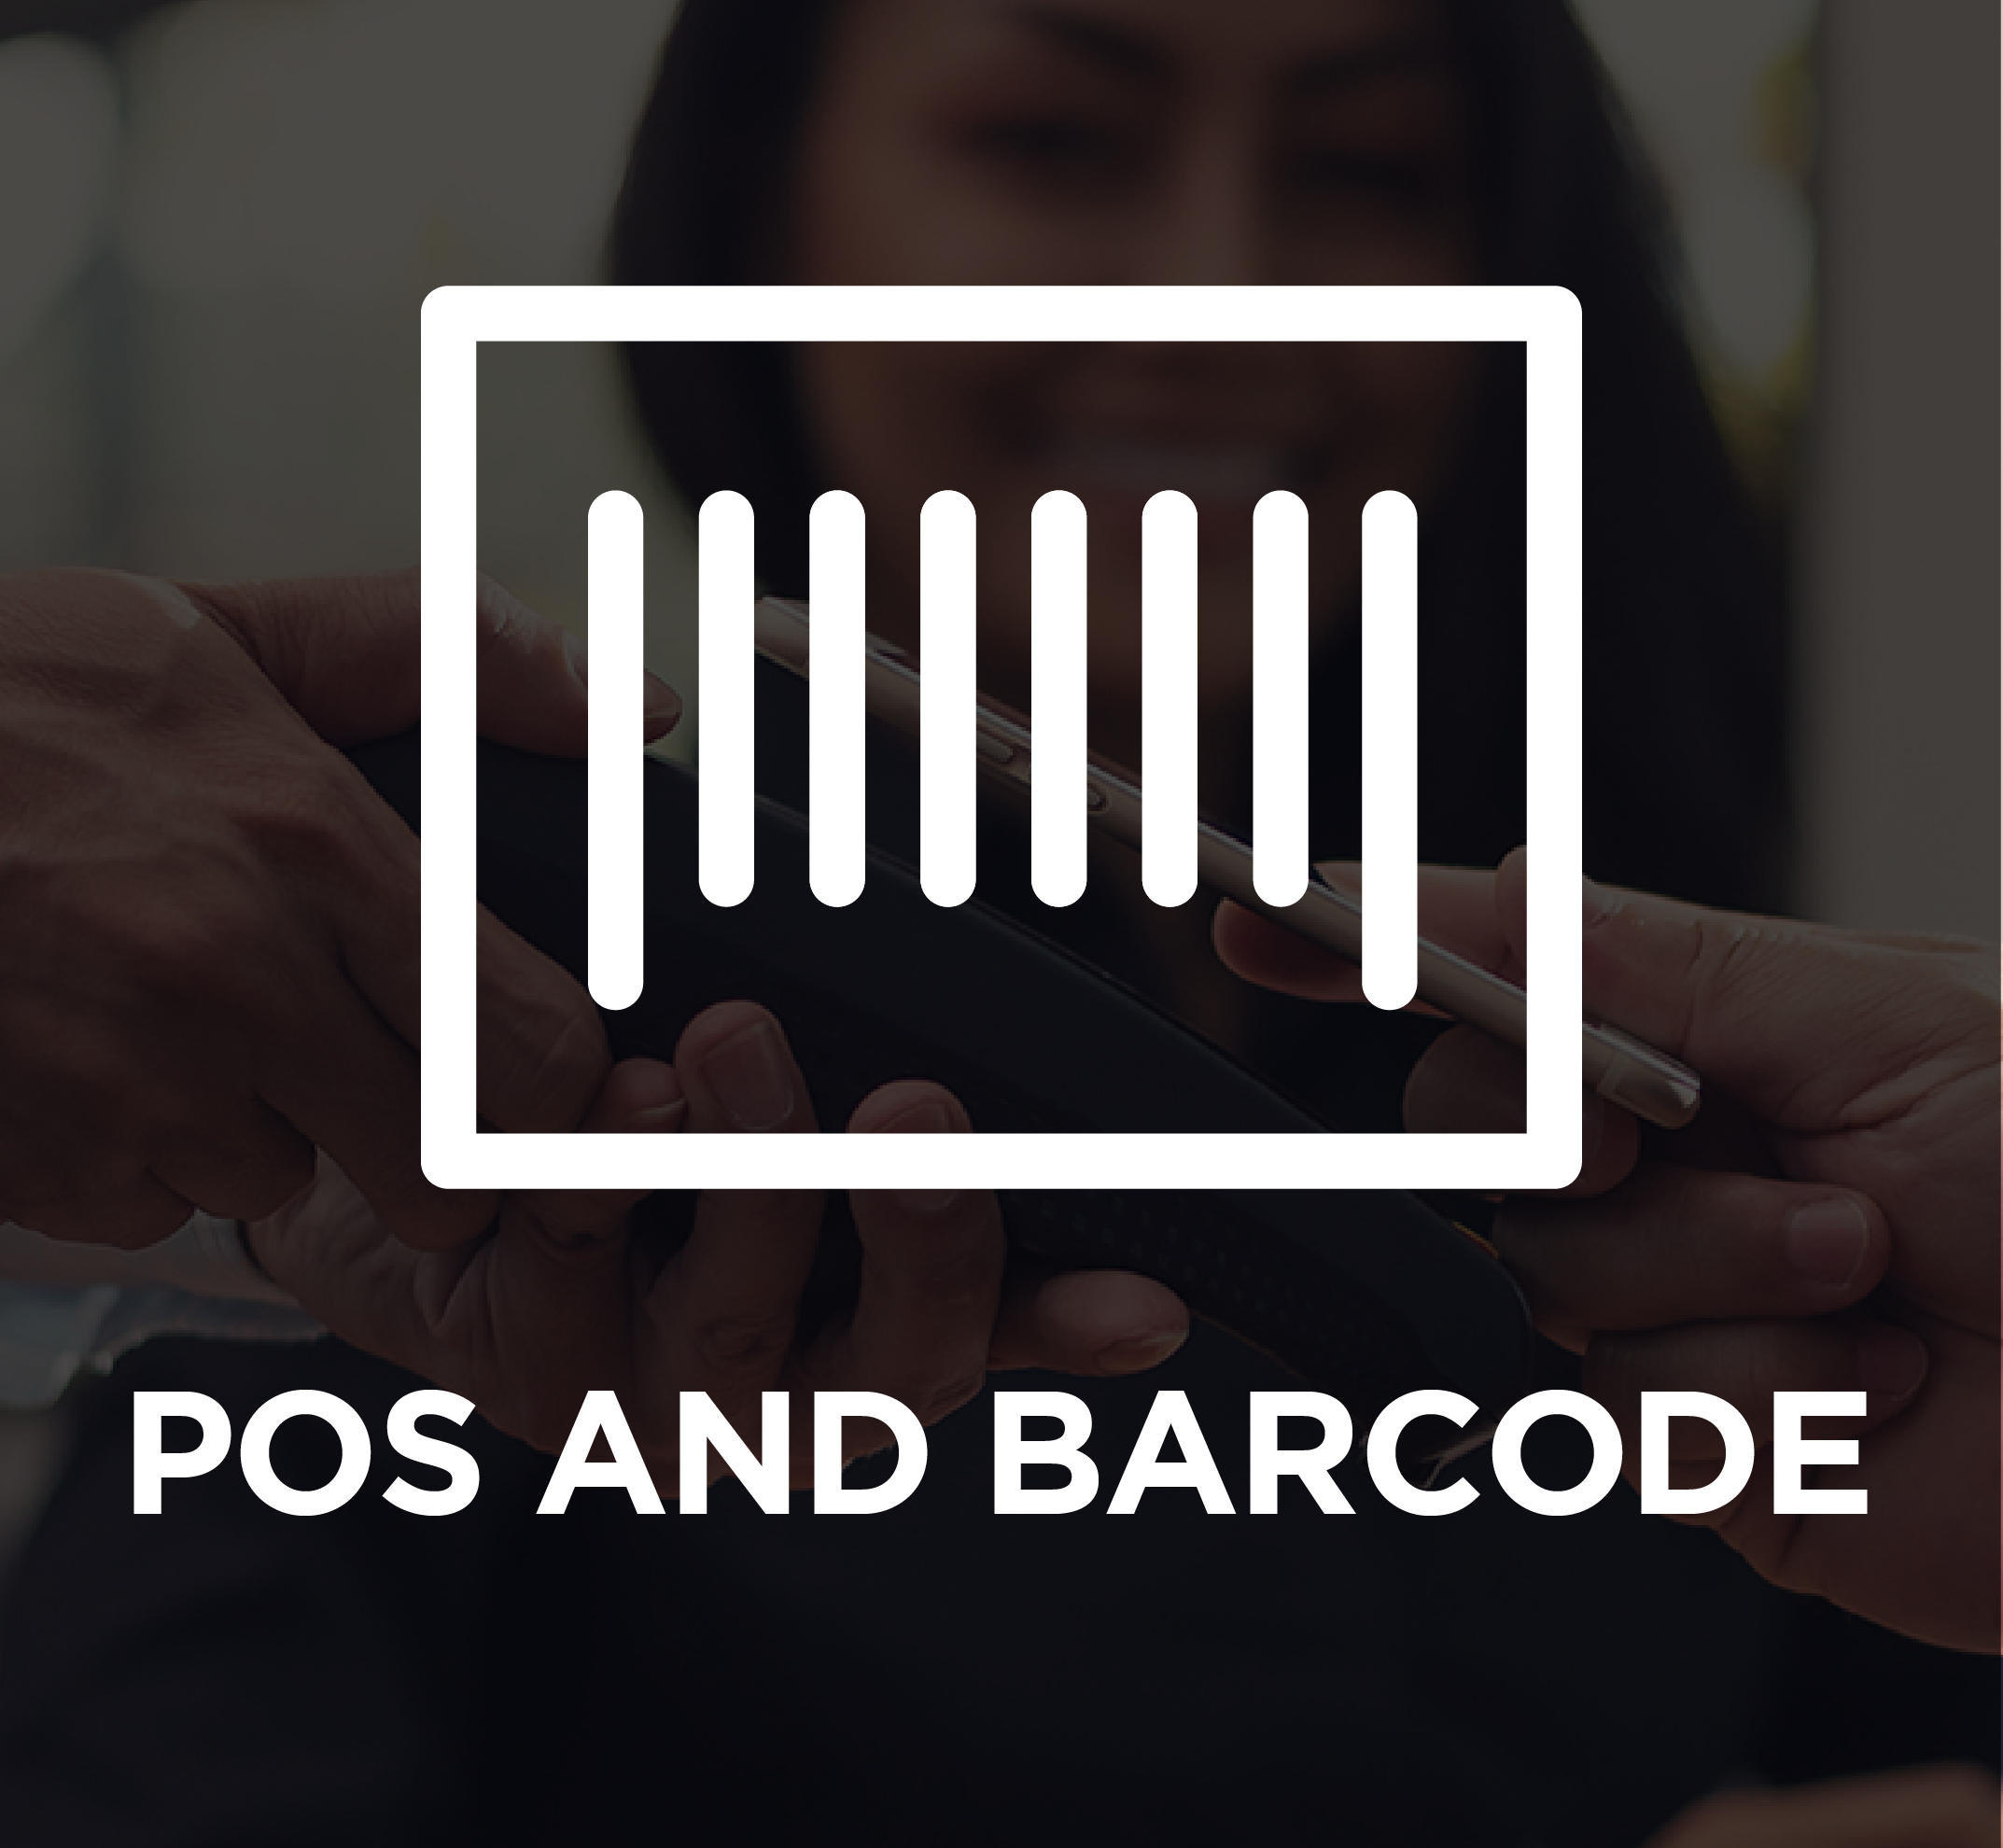 POS-and-Barcode-title